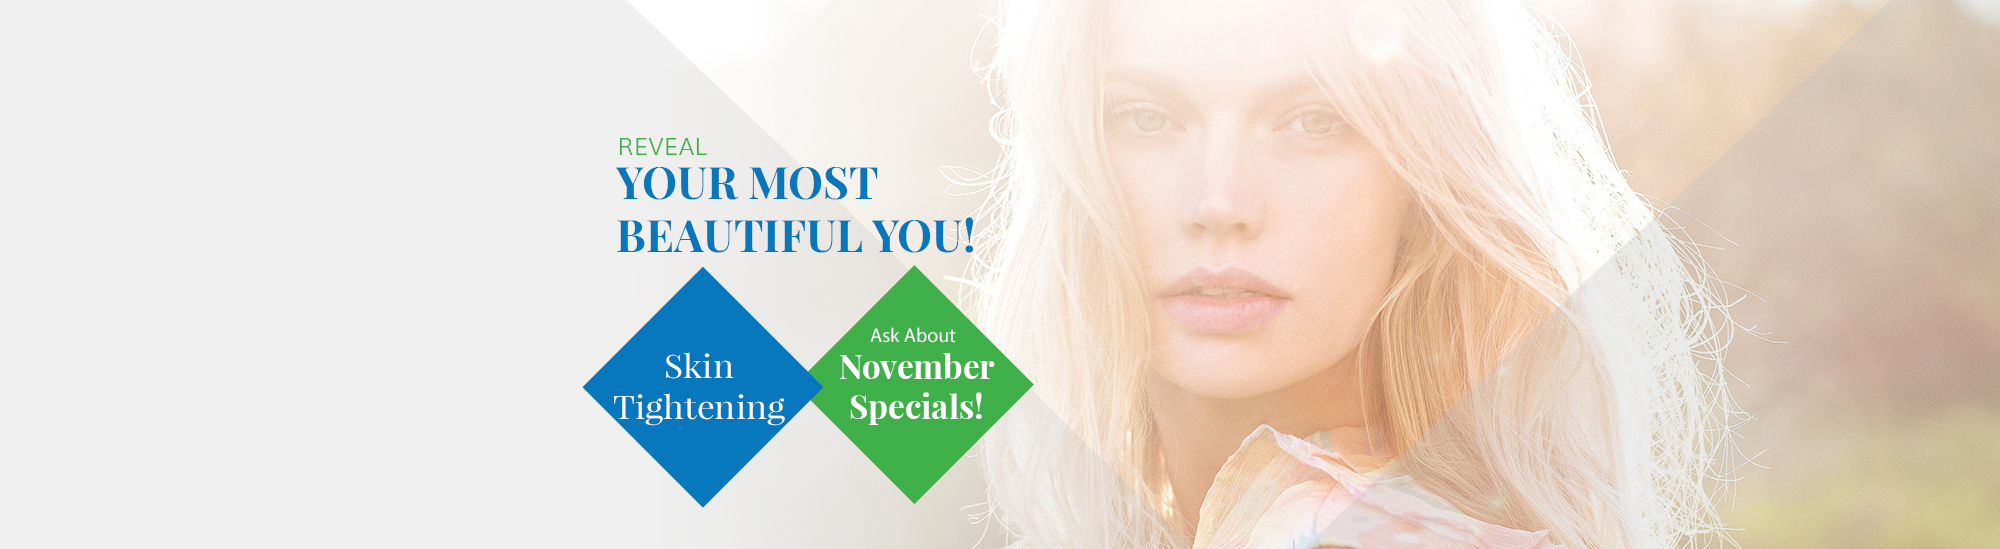 Ask about Skin Tightening specials during November at NuYou Weight Loss and More.